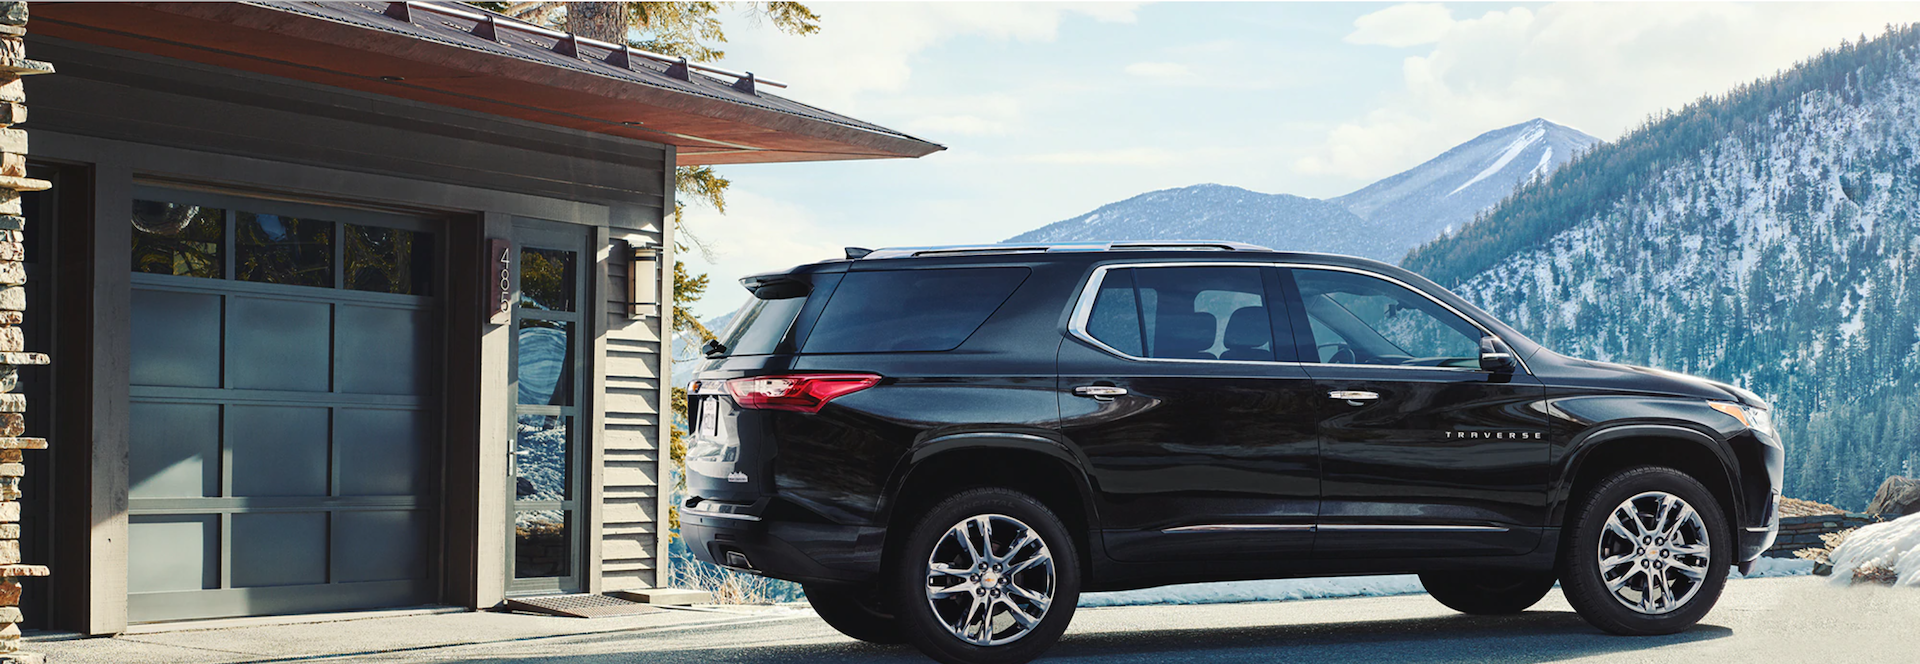 Picture of the back side of the 2021 Chevy Traverse.